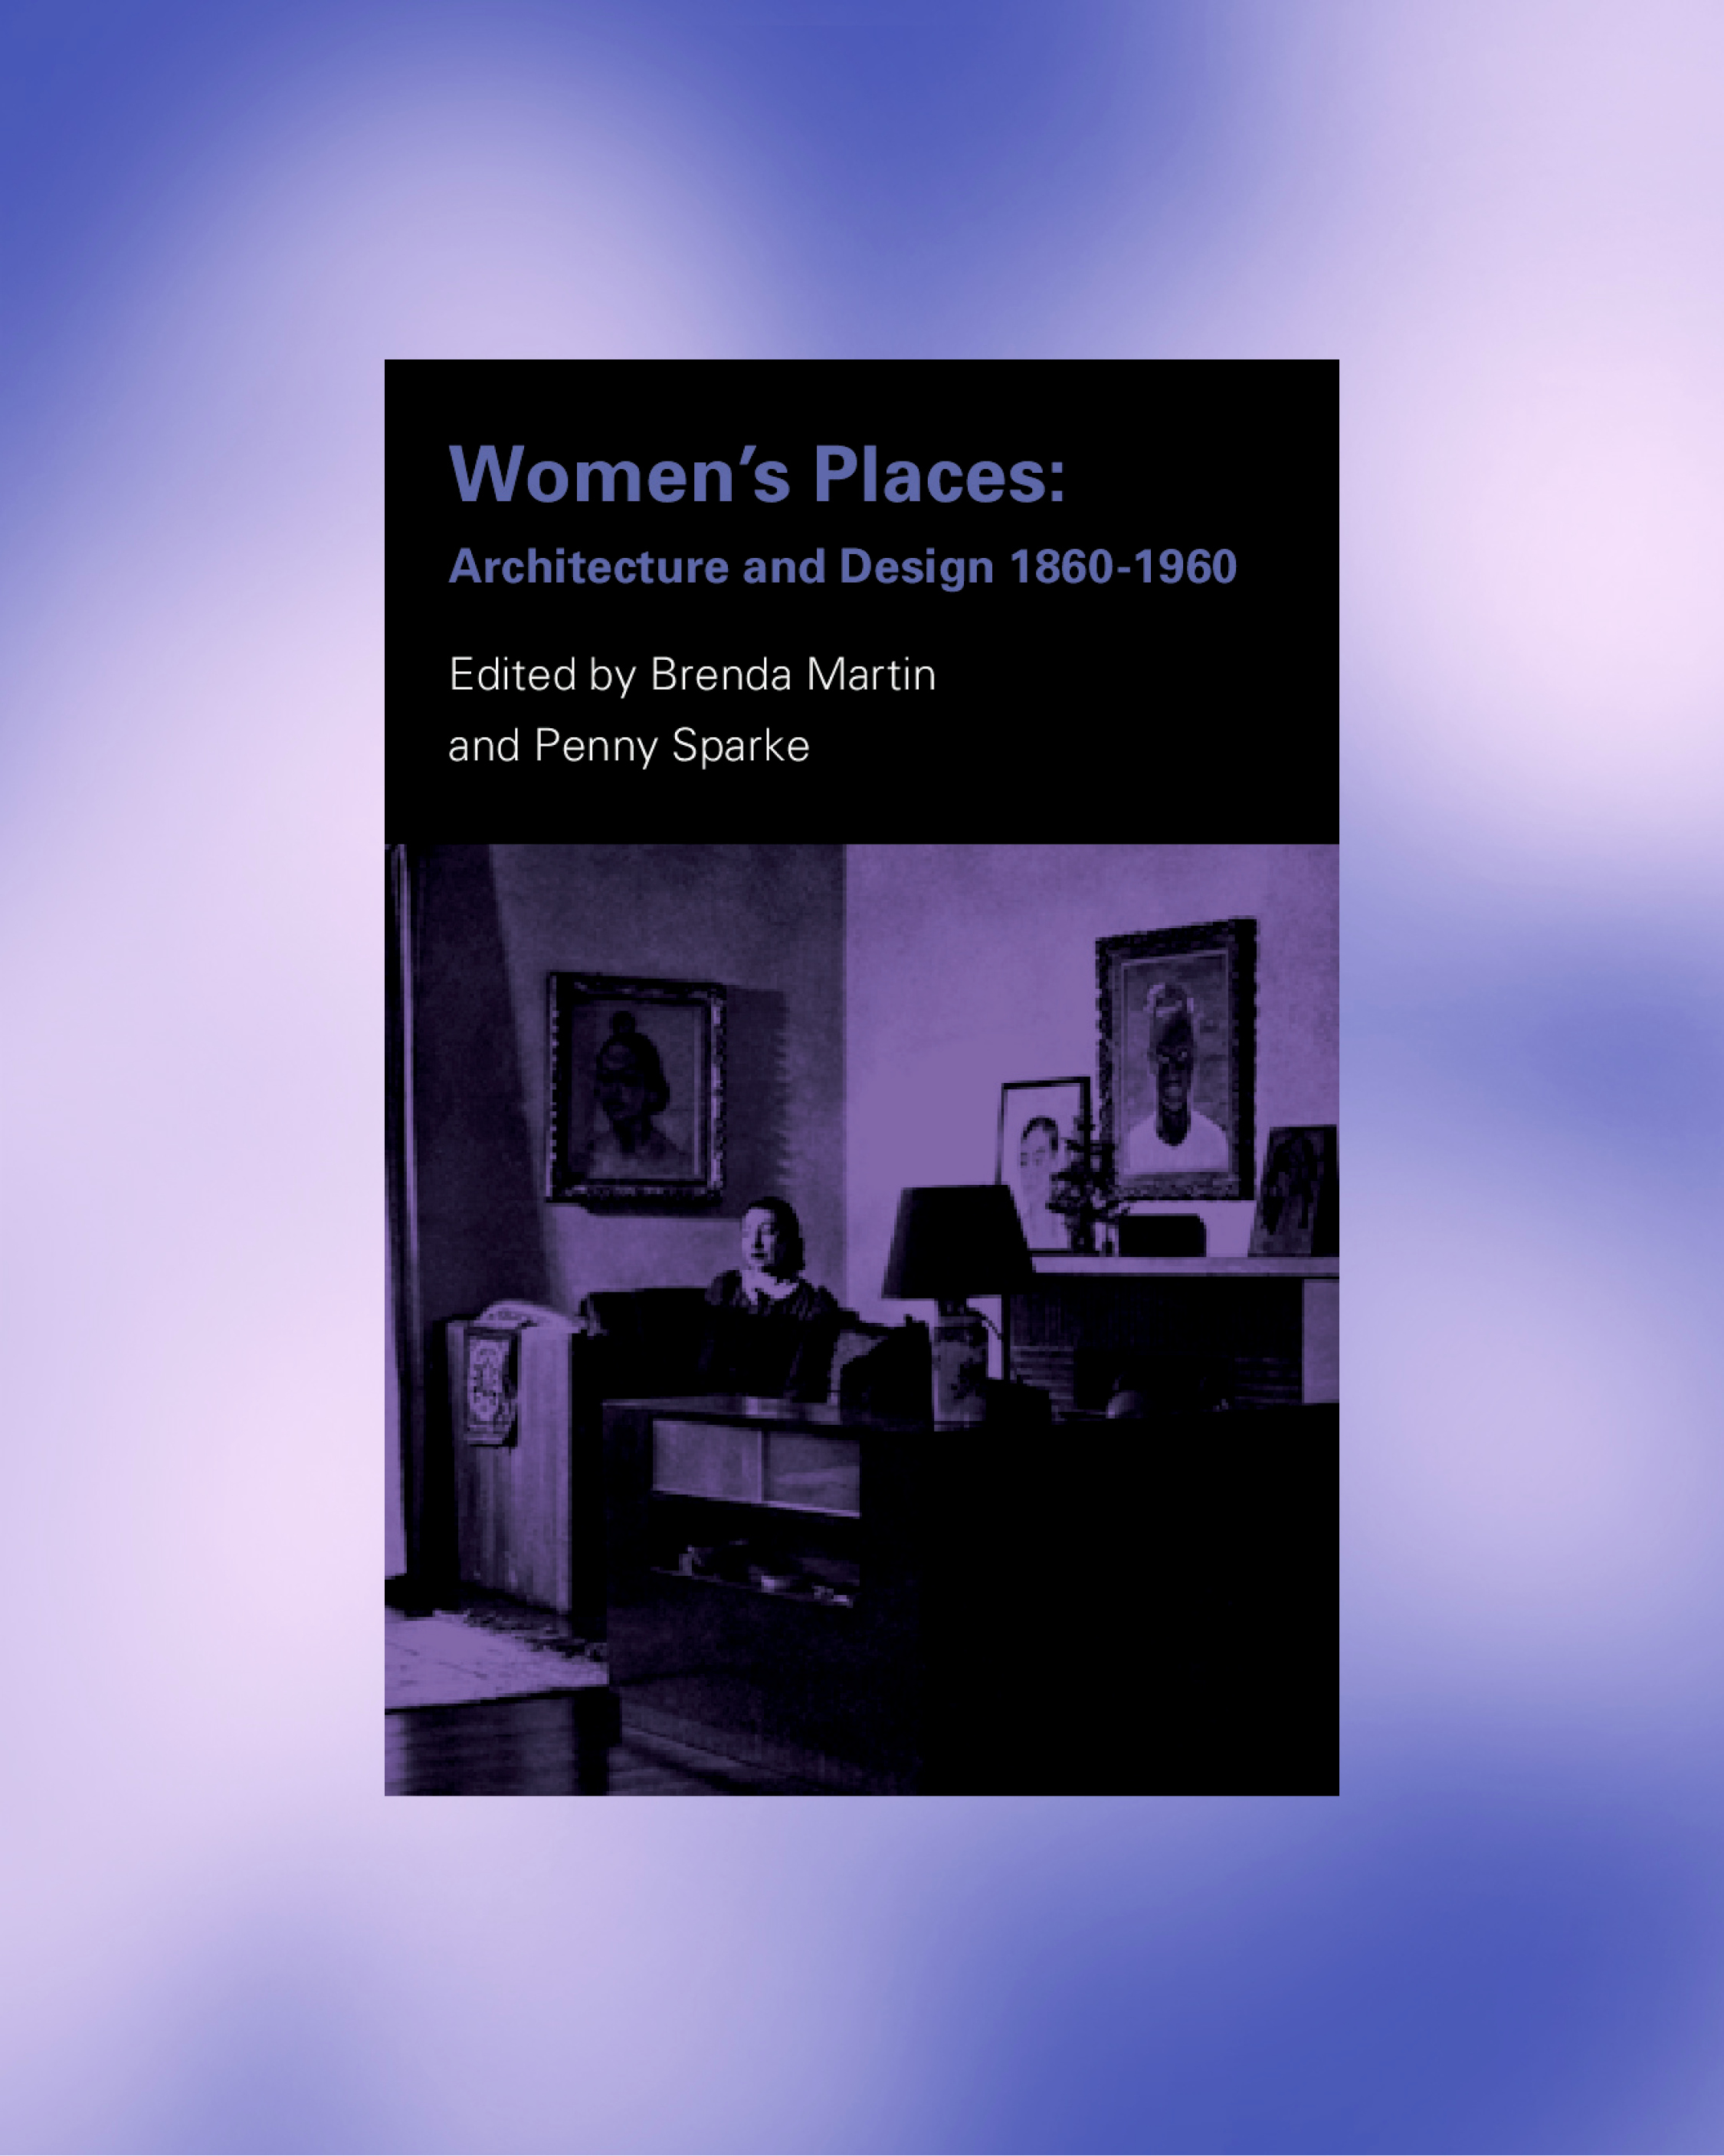 Women's places book cover